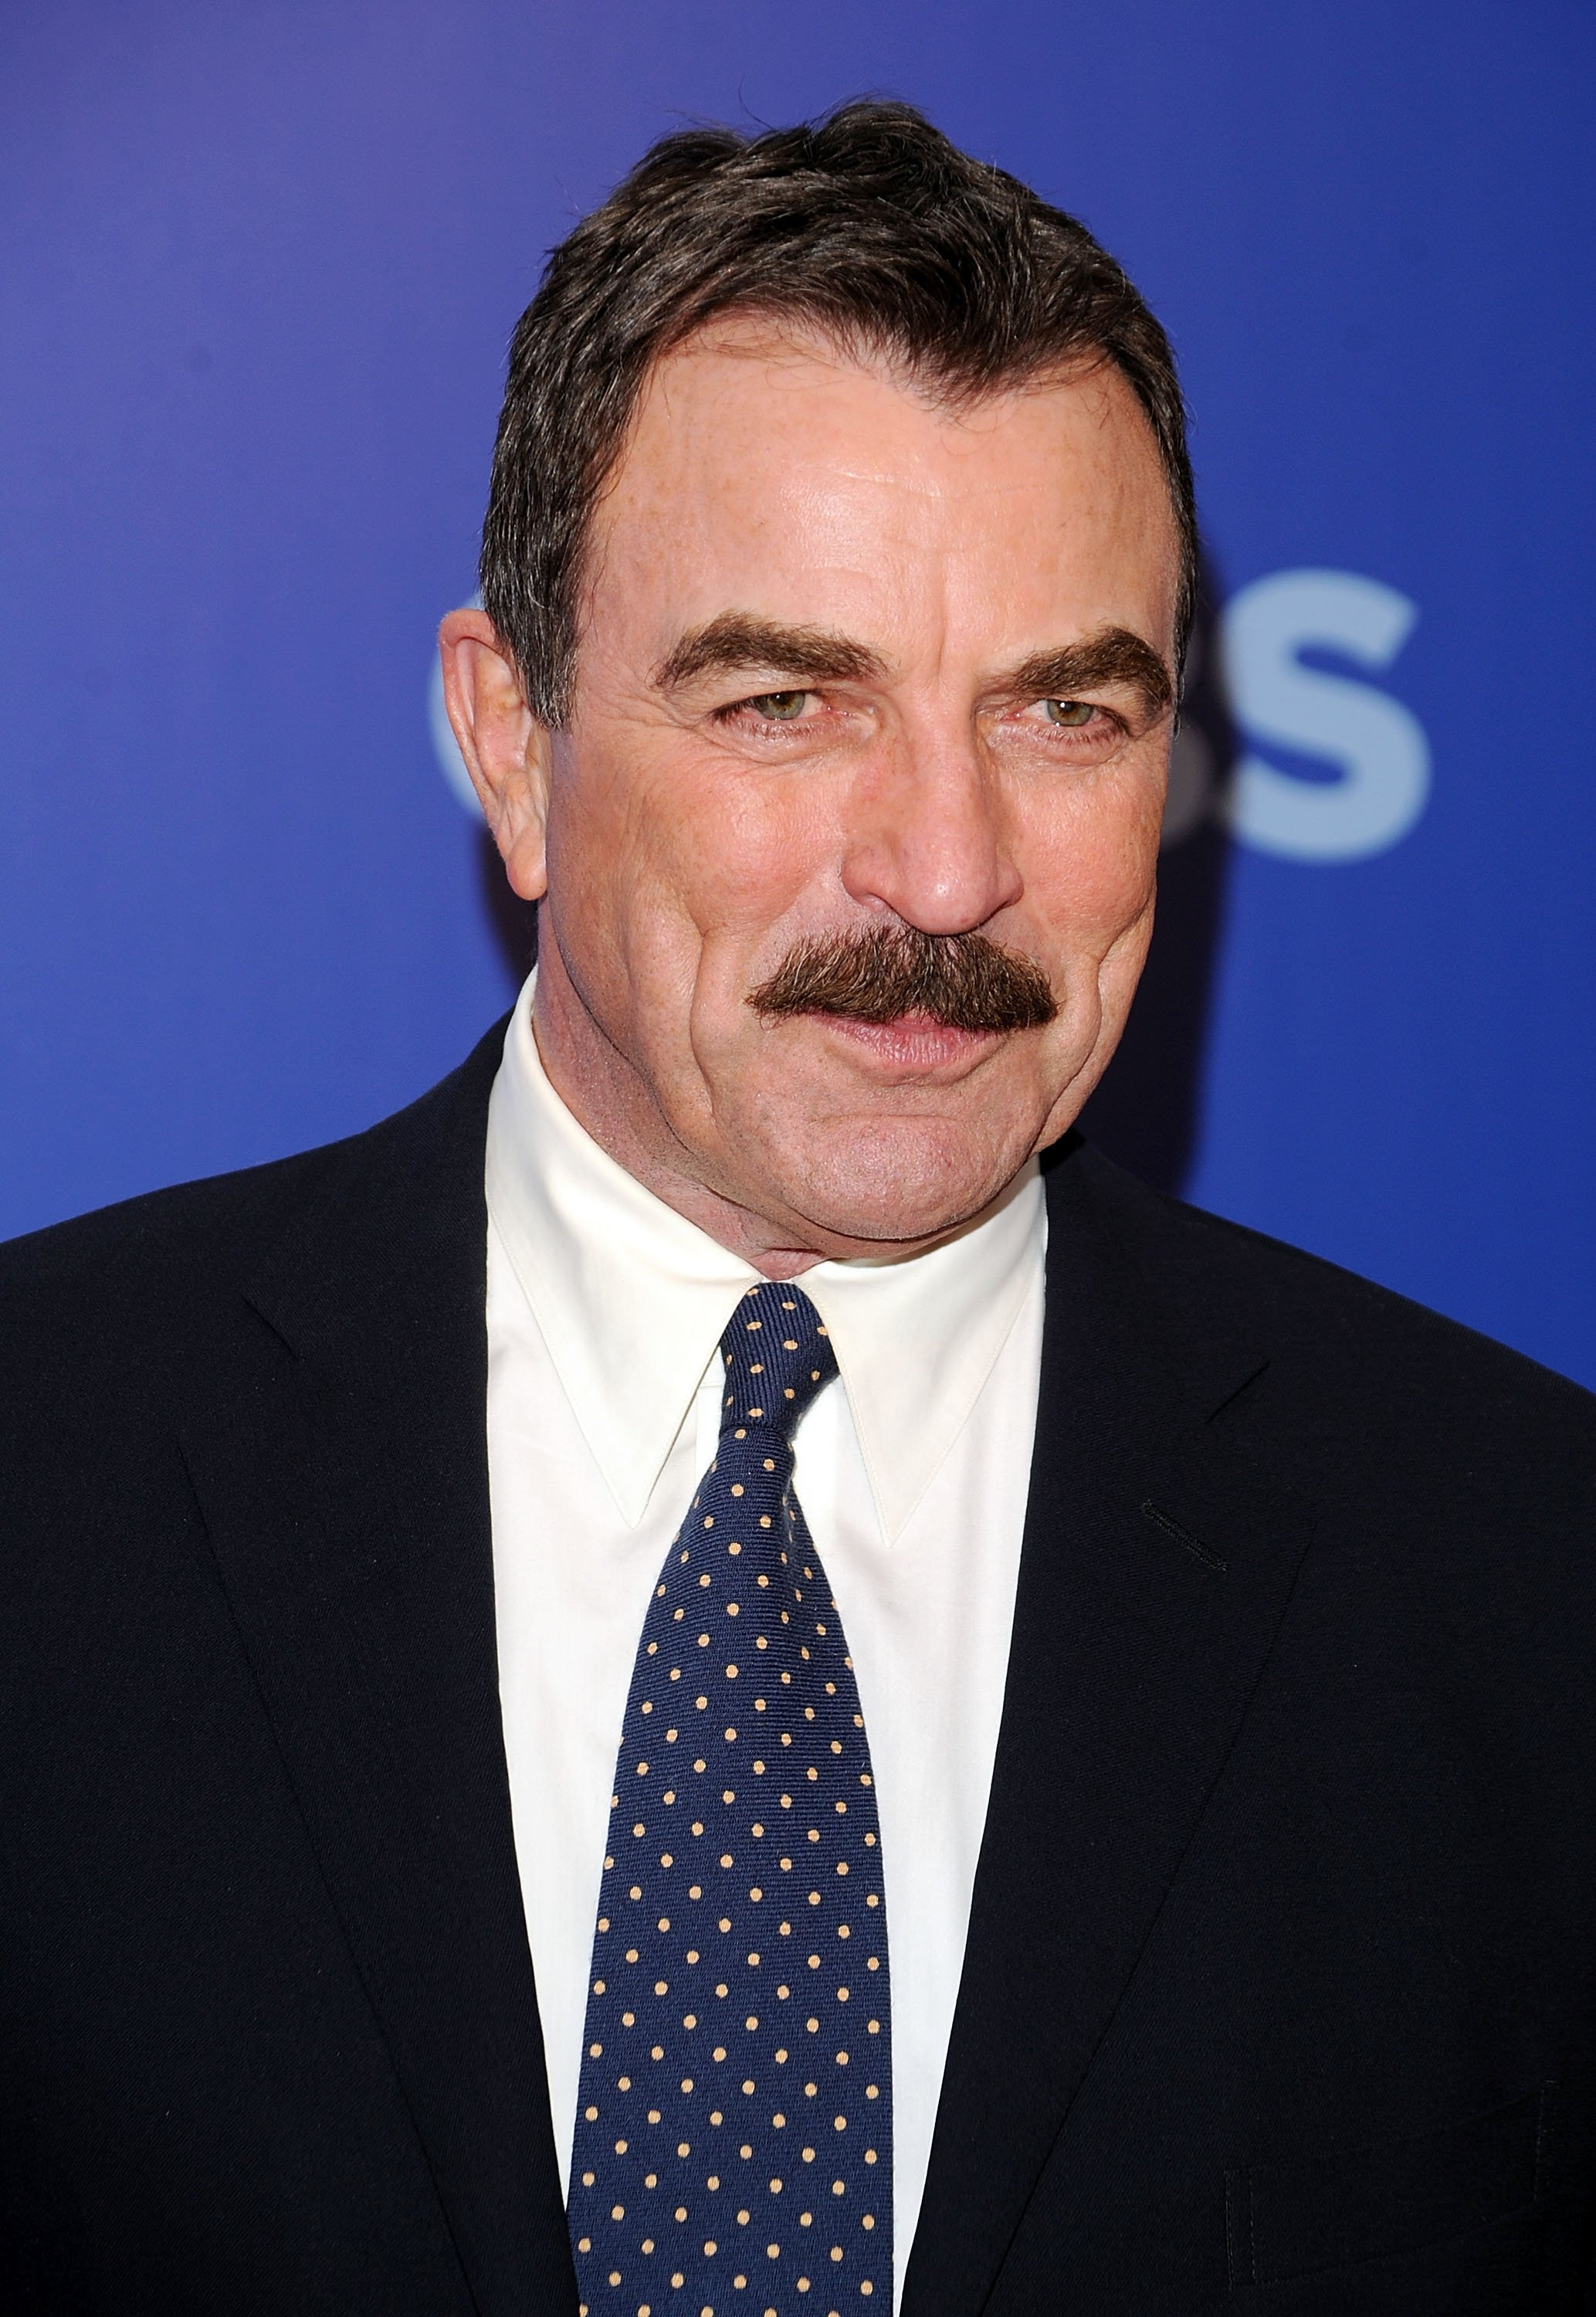 Tom Selleck attends the 2010 CBS UpFront in New York City on May 19, 2010 | Photo: Getty Images